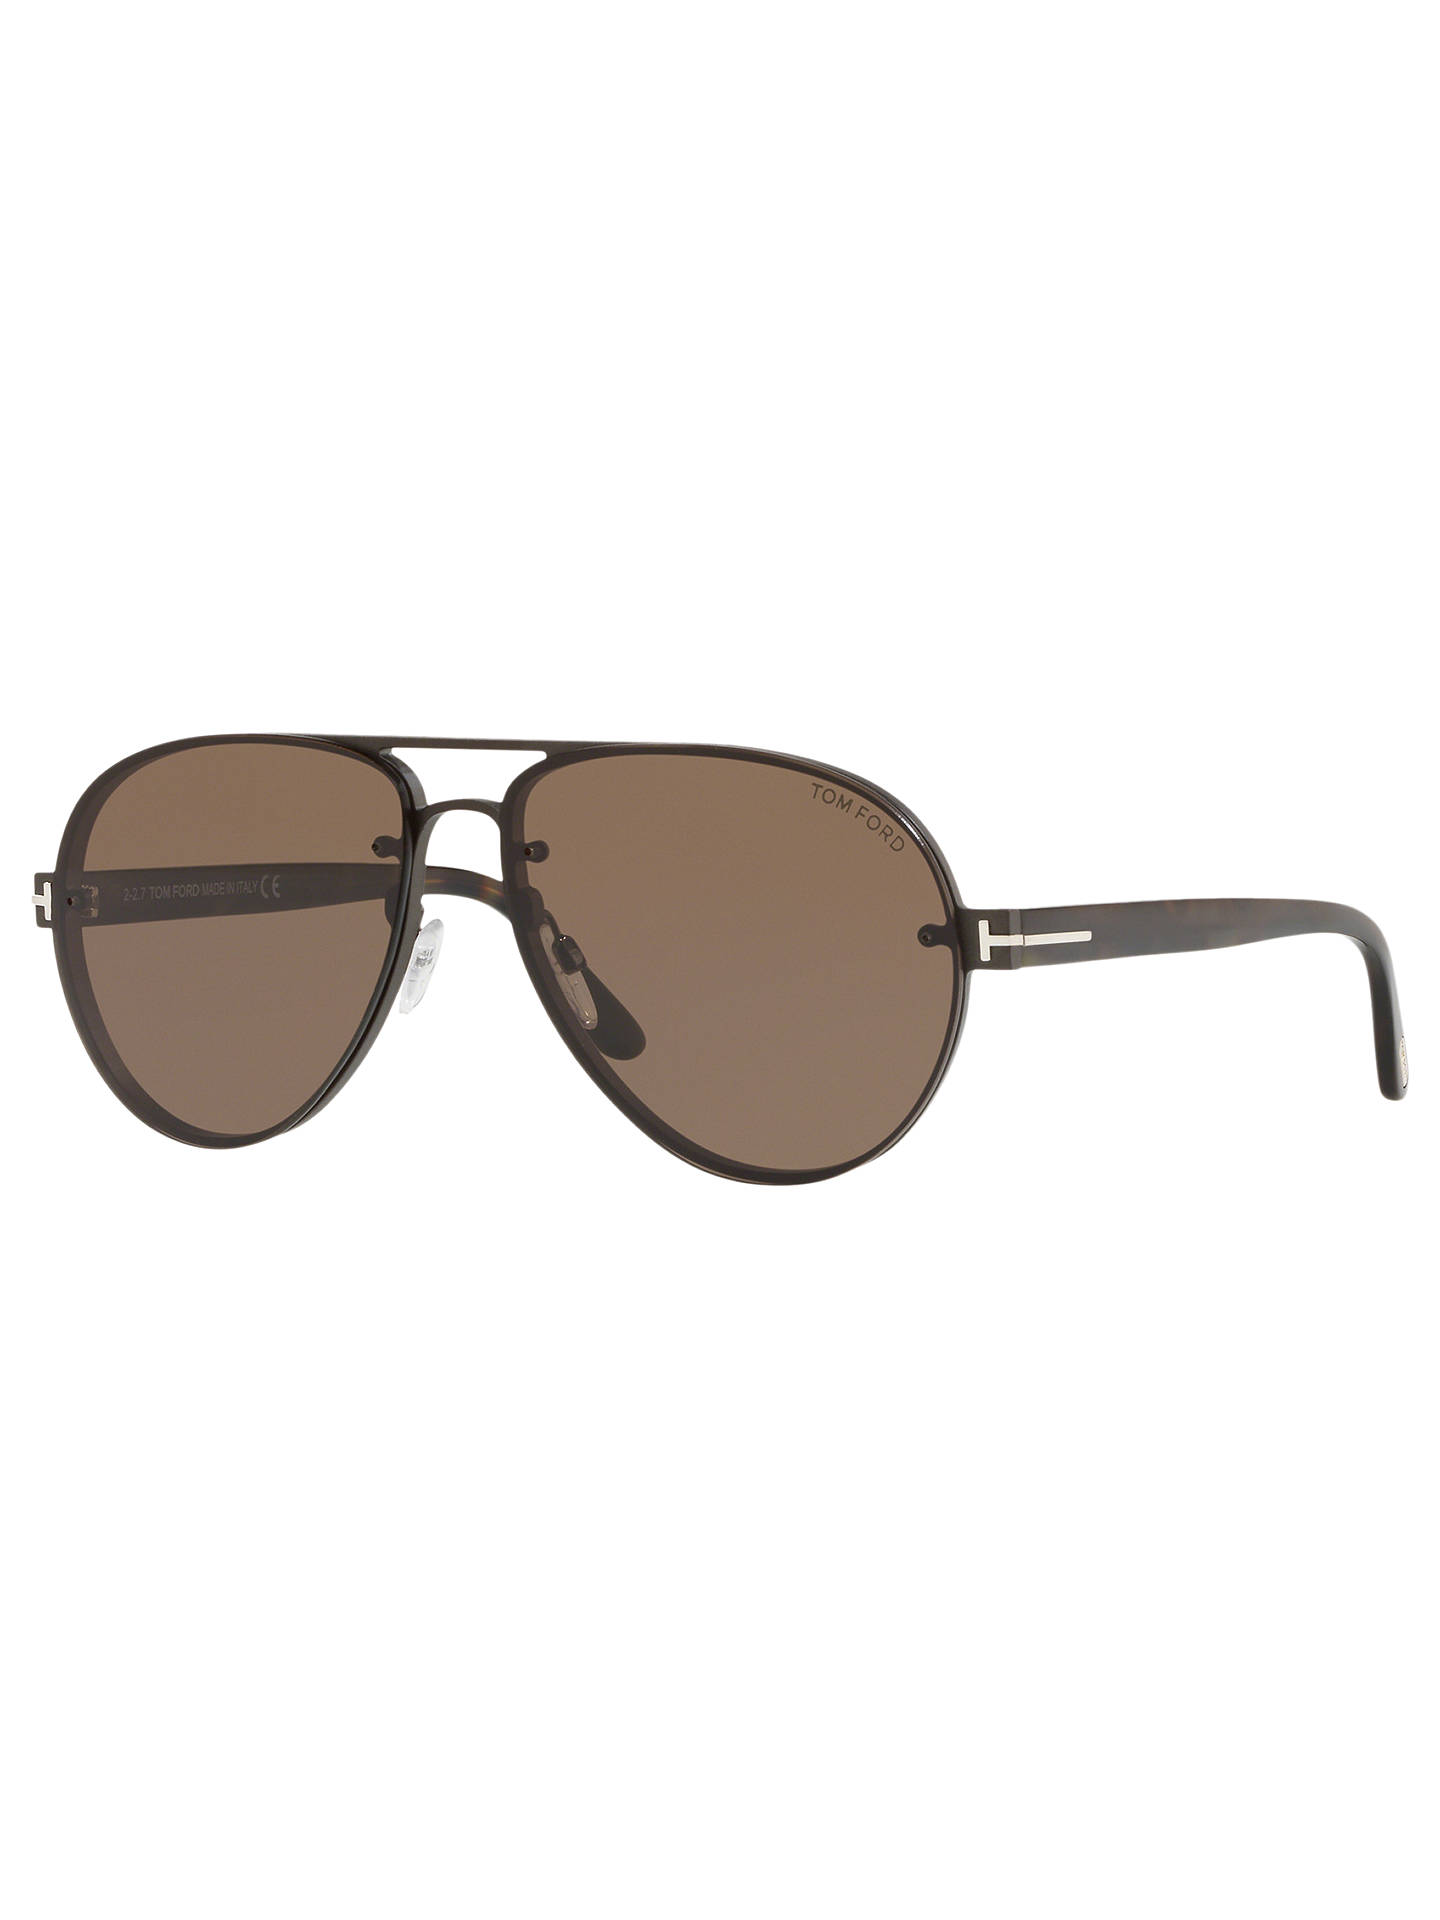 20f6ec66a5 TOM FORD FT0622 Men s Alexei-02 Aviator Sunglasses at John Lewis ...